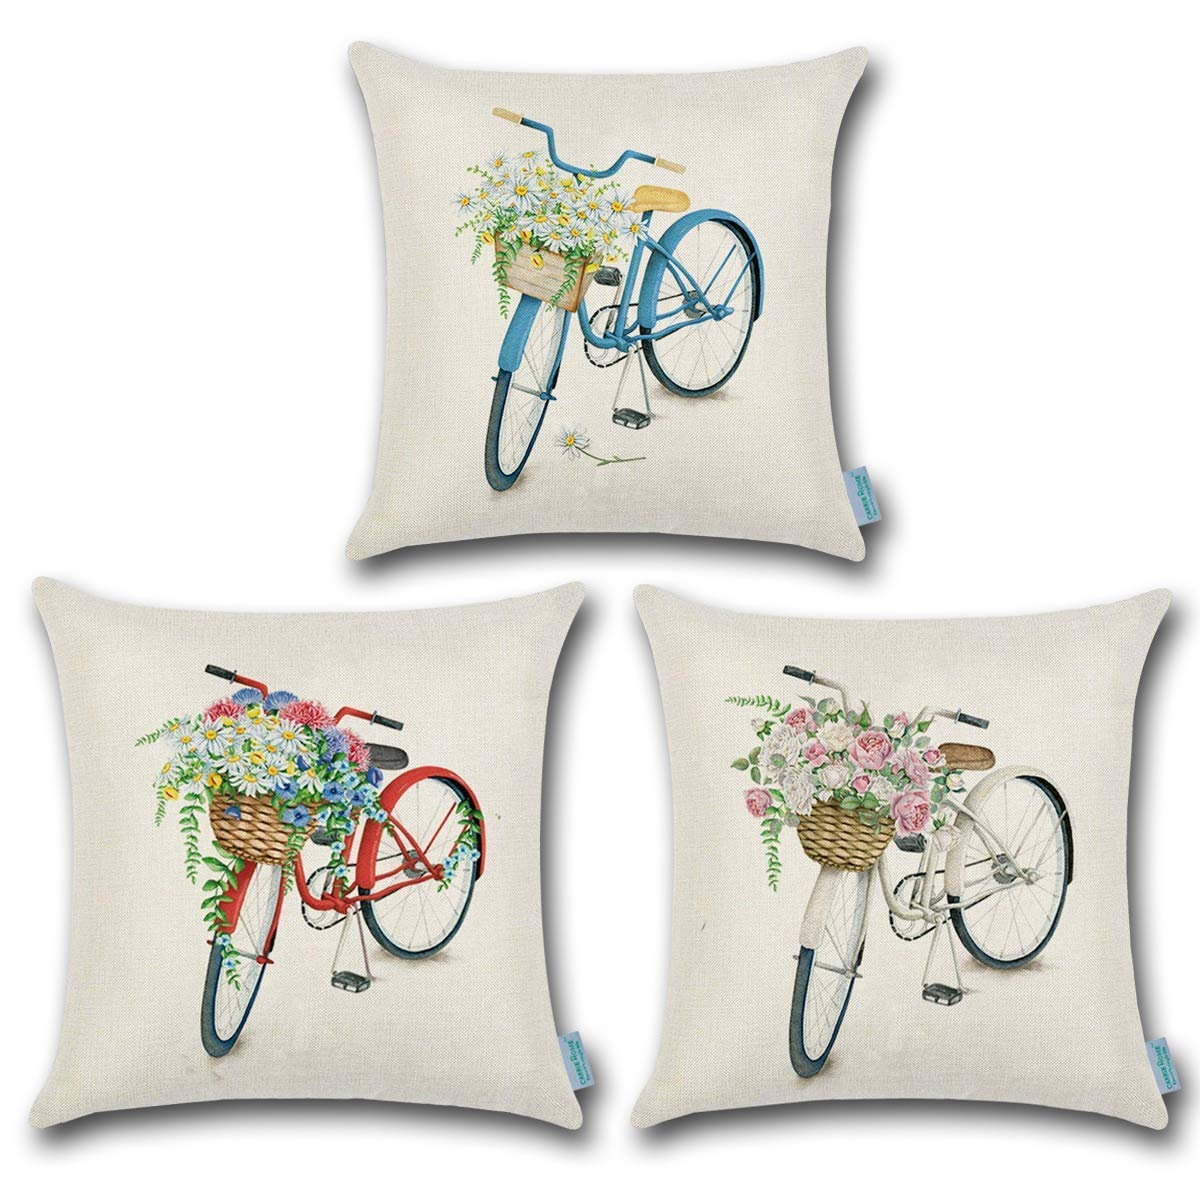 CARRIE HOME Bicycle Decorations Red Blue and White Bike Seat Pillow Covers 18x18 Inches, 3 Pack